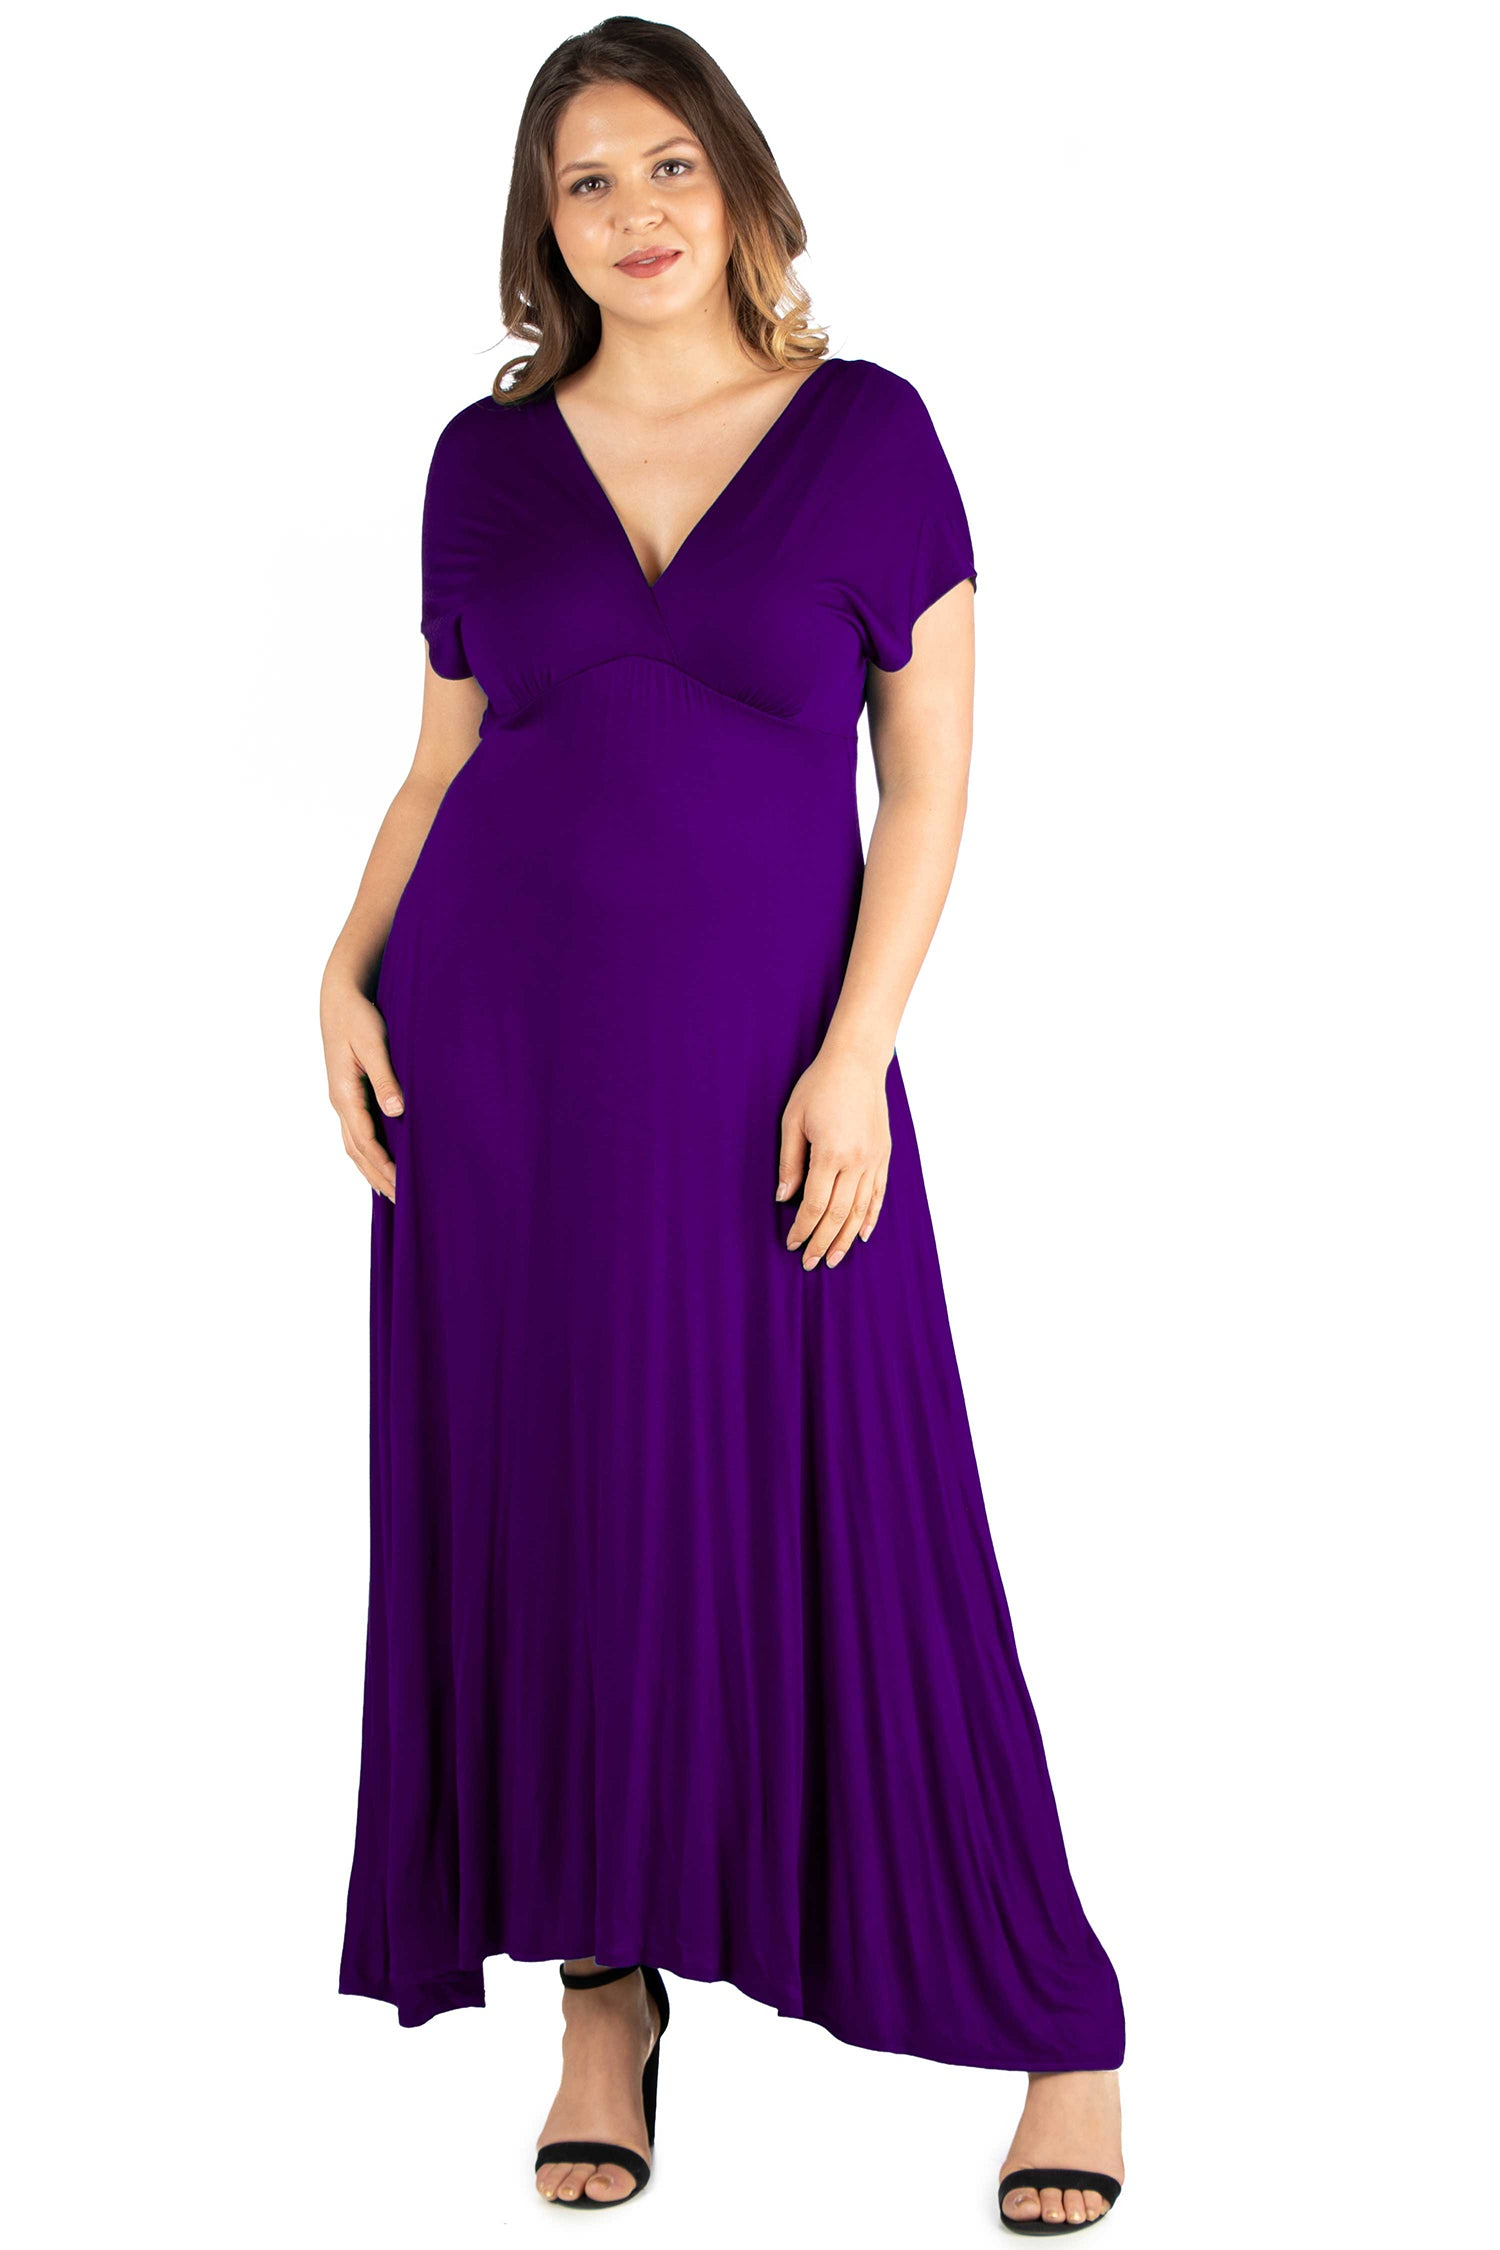 24seven Comfort Apparel Empire Waist V Neck Plus Size Maxi Dress-DRESSES-24Seven Comfort Apparel-PURPLE-1X-24/7 Comfort Apparel